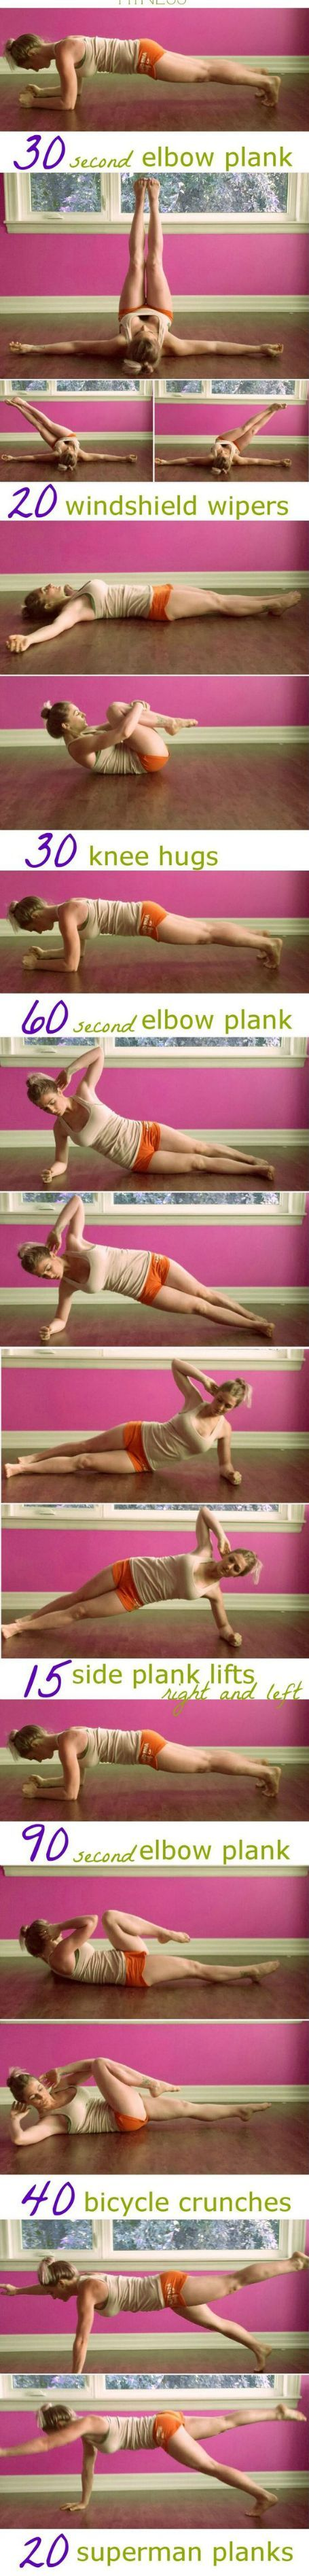 - How to lose inner thigh fat? ... Get rid of inner thigh fat…